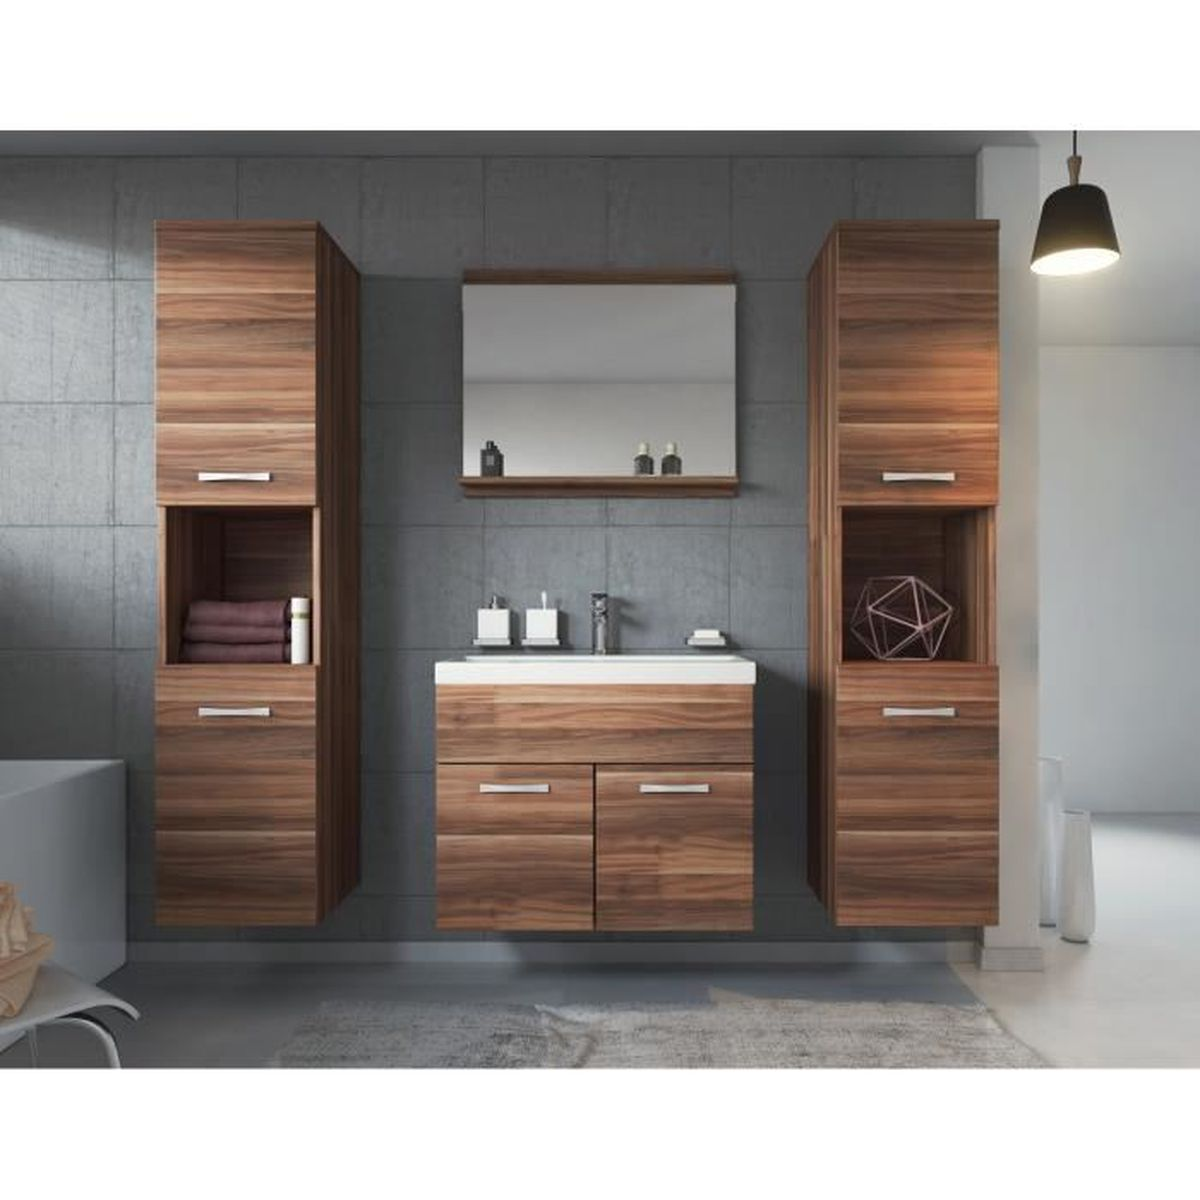 meuble de salle de bain de montr al xl 60 cm bassin en bois noyer armoire de rangement meuble. Black Bedroom Furniture Sets. Home Design Ideas